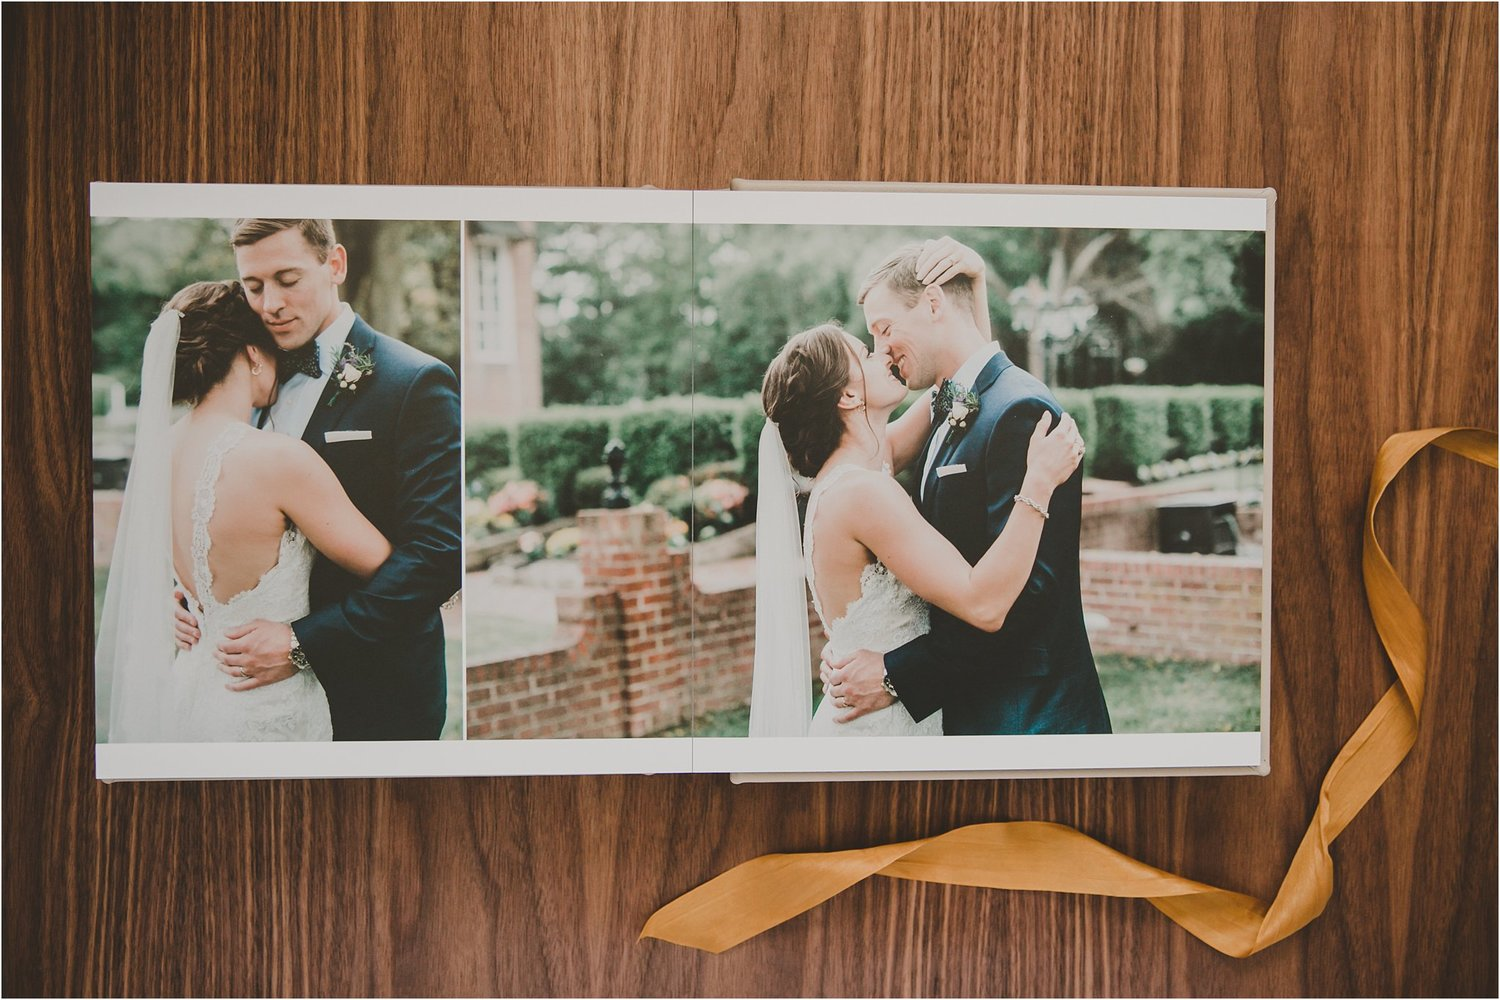 heirloom products alyssa taylors custom wedding album richmond virginia photographer pattengale photography